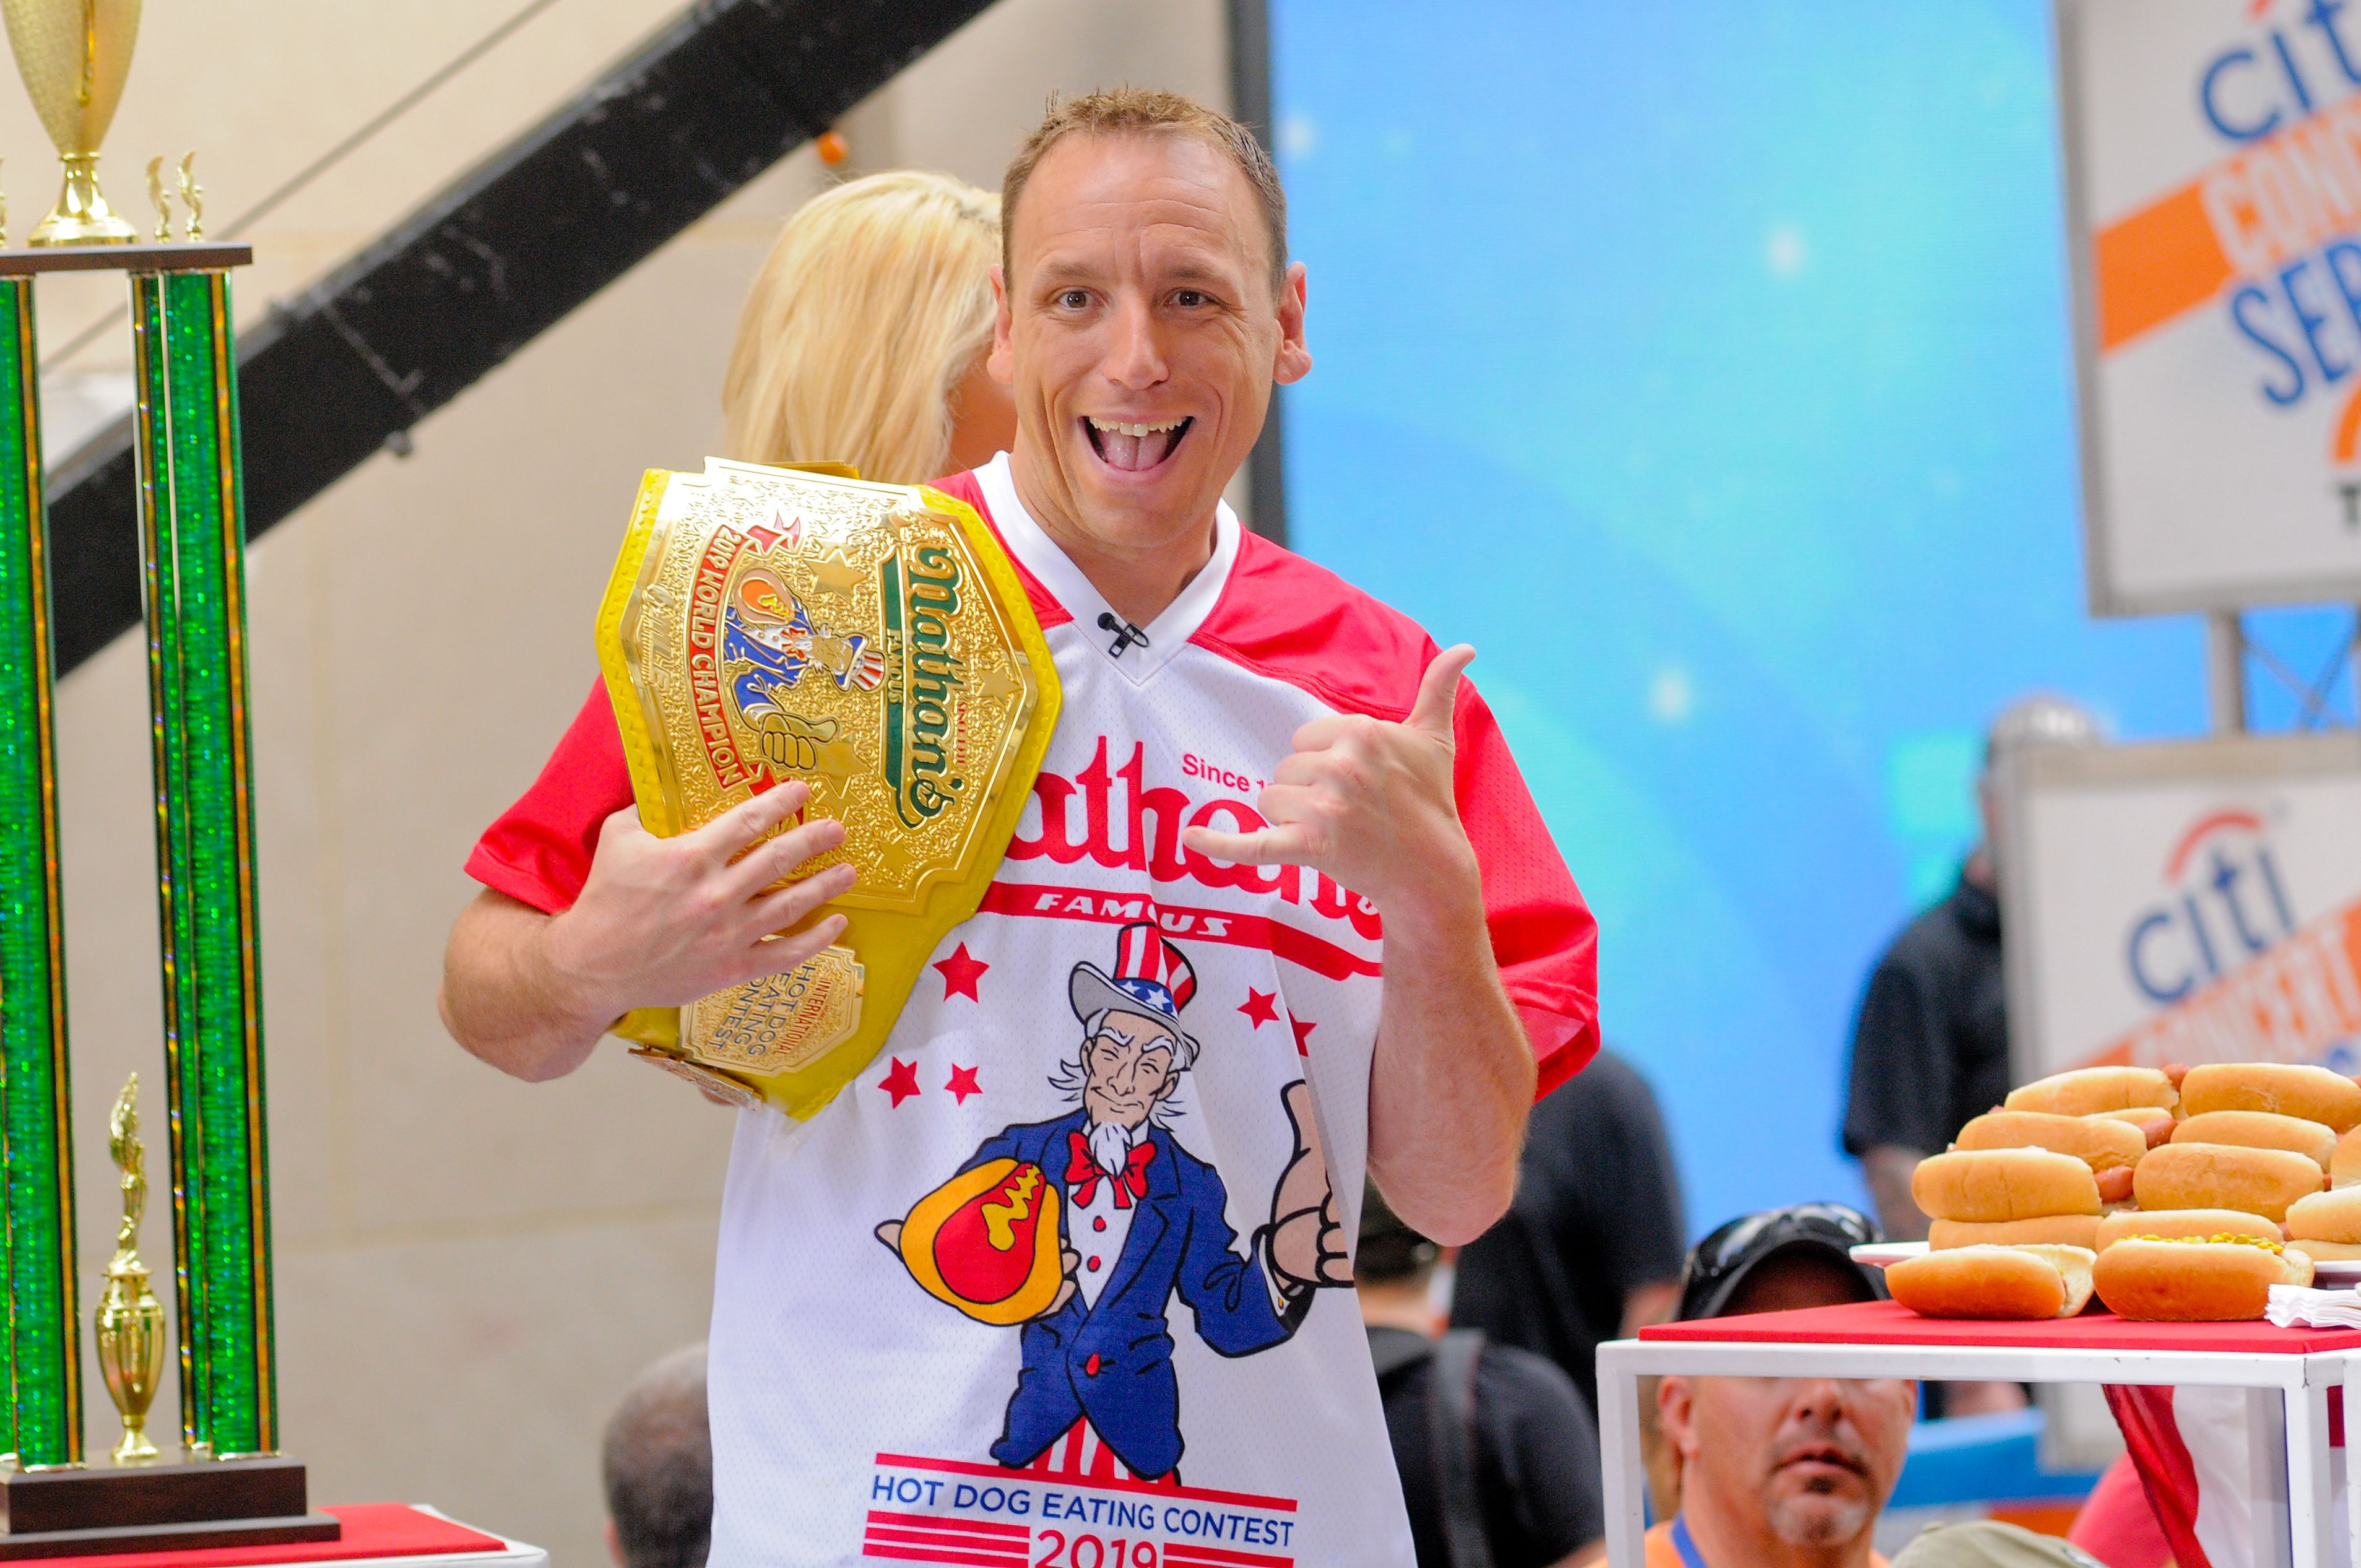 Joey Chestnut in New York City on NBC's Today Show in 2019 | Source: Getty Images